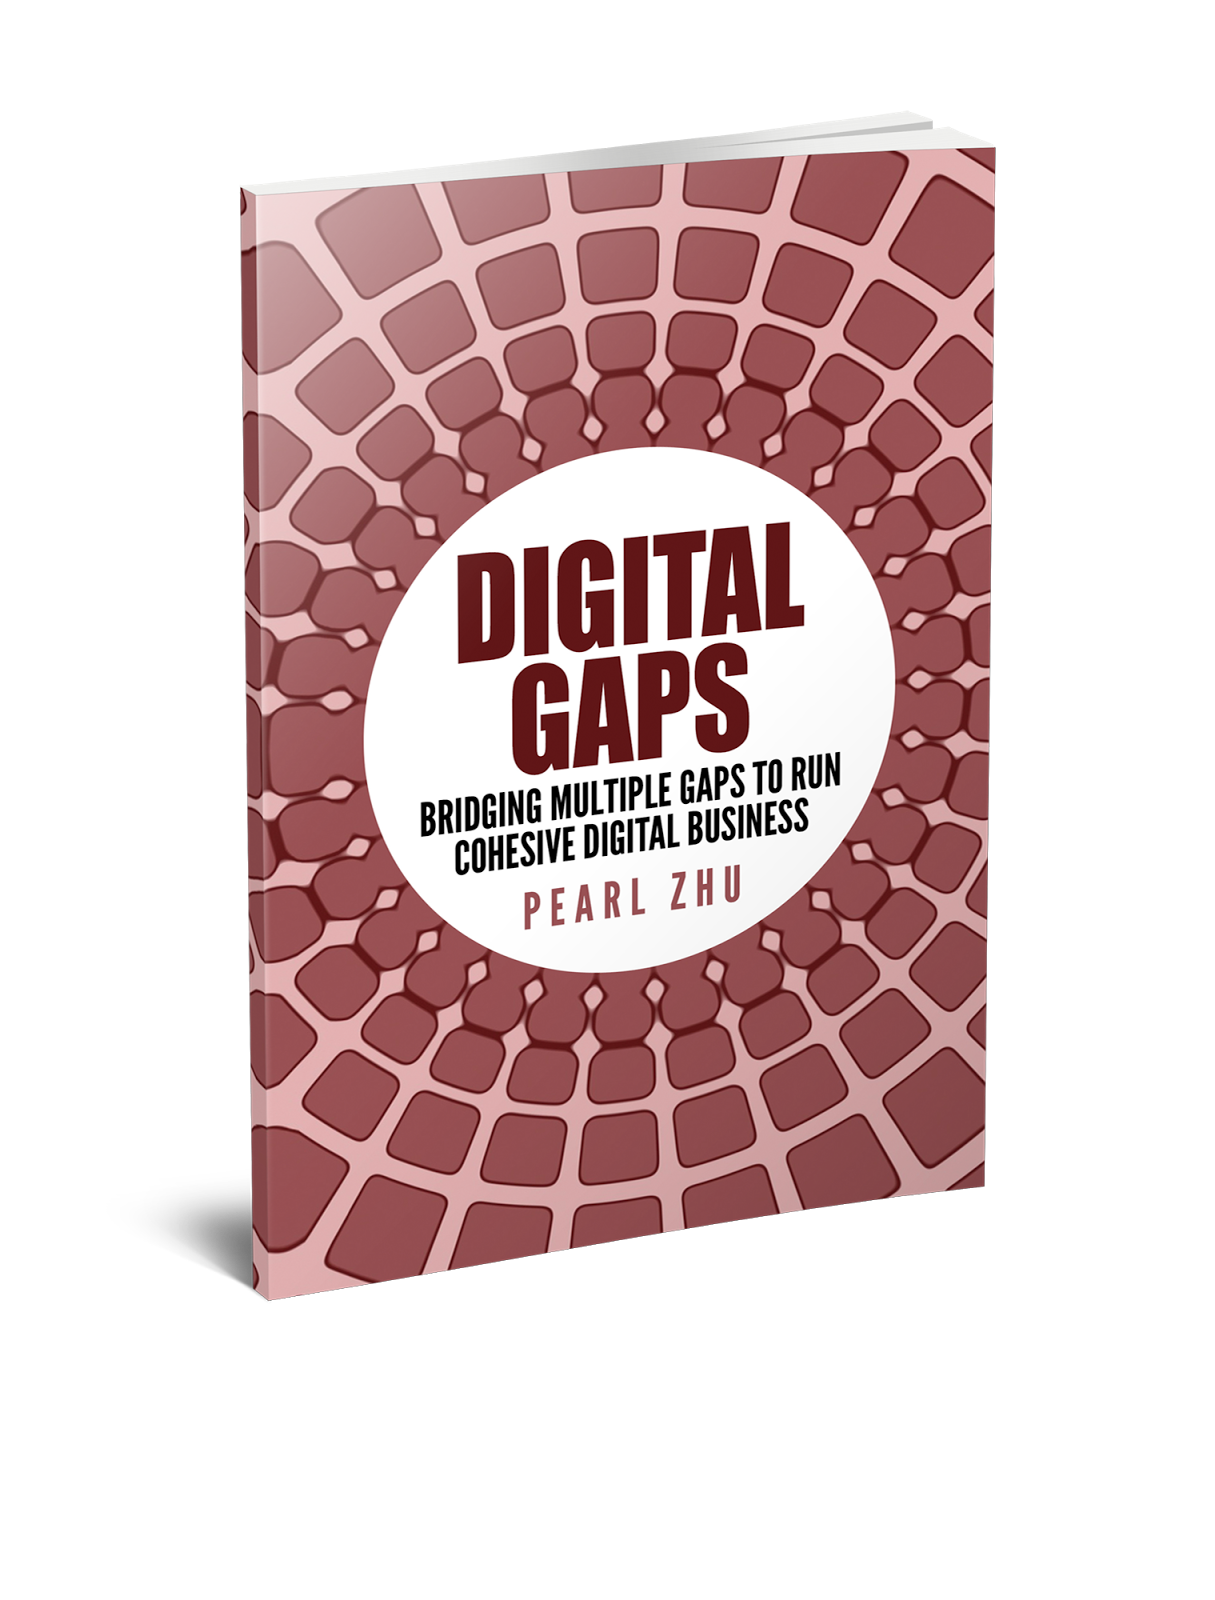 Digital Gaps